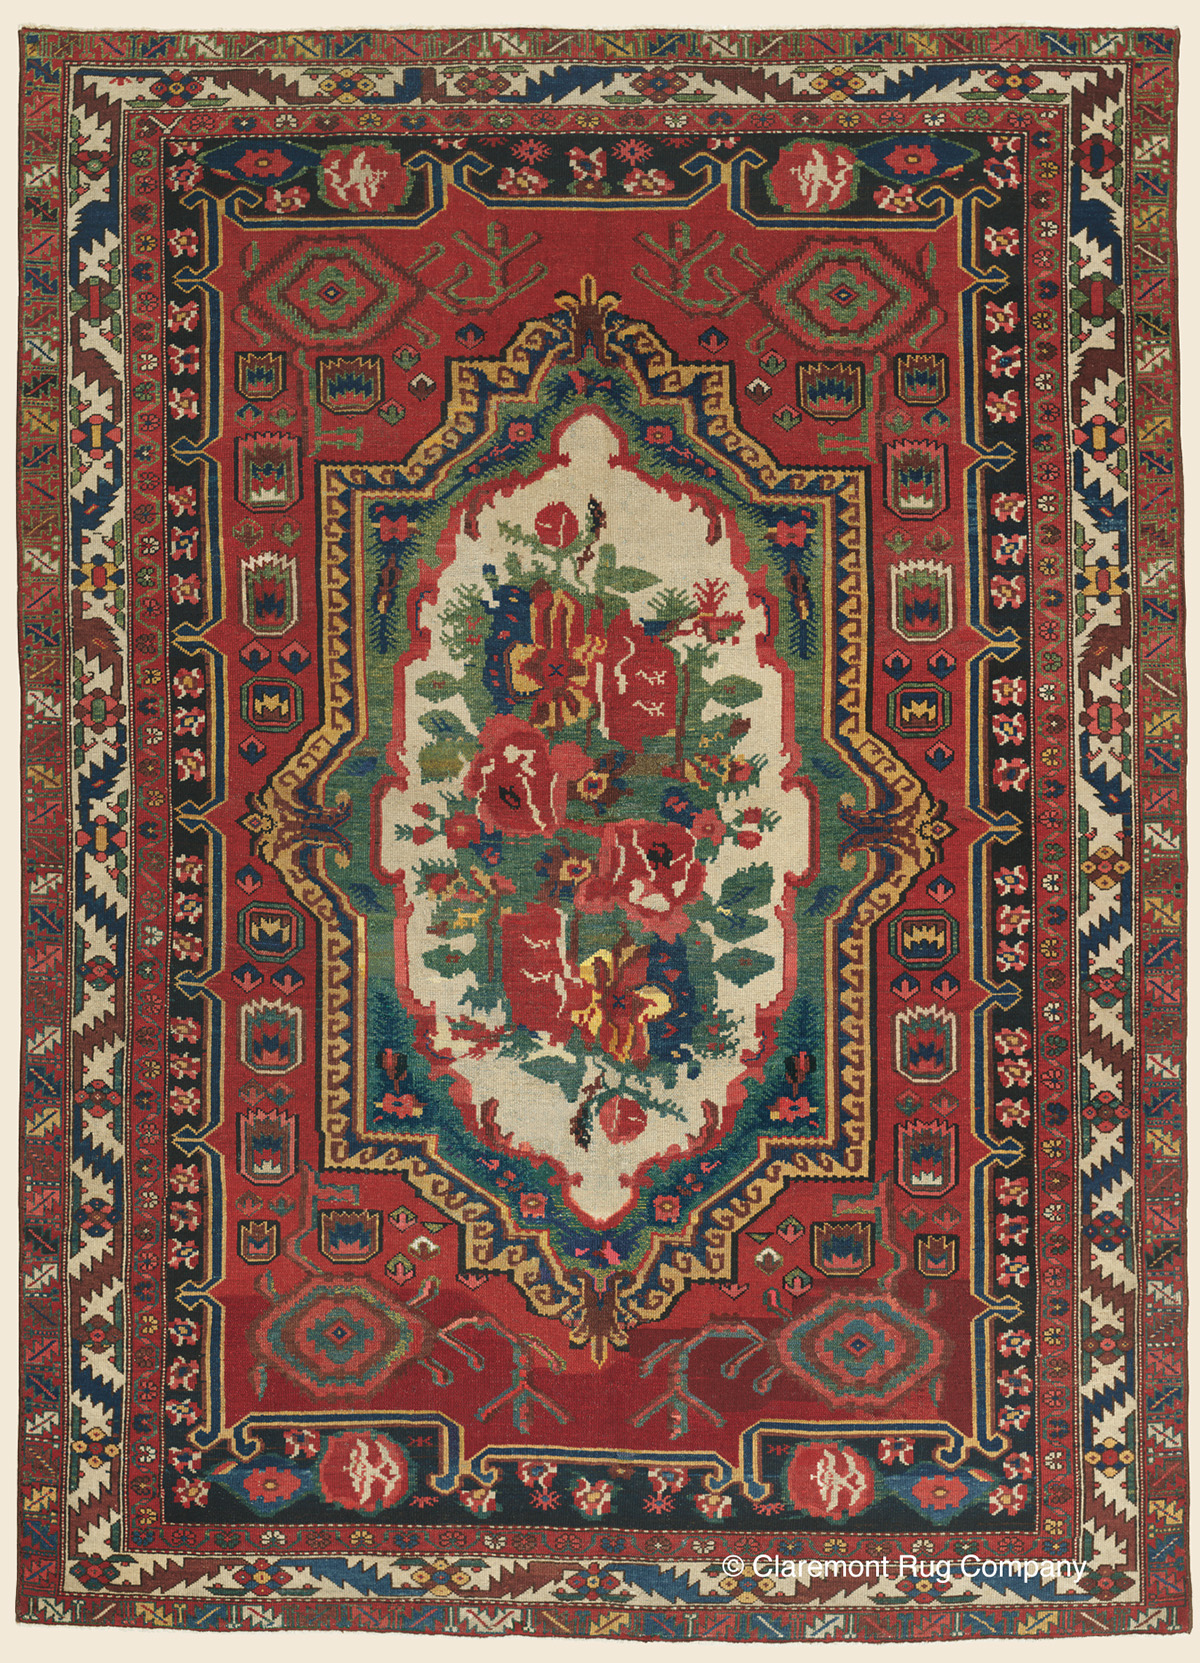 Bakhtiari Central Persian Antique Rug Claremont Rug Company